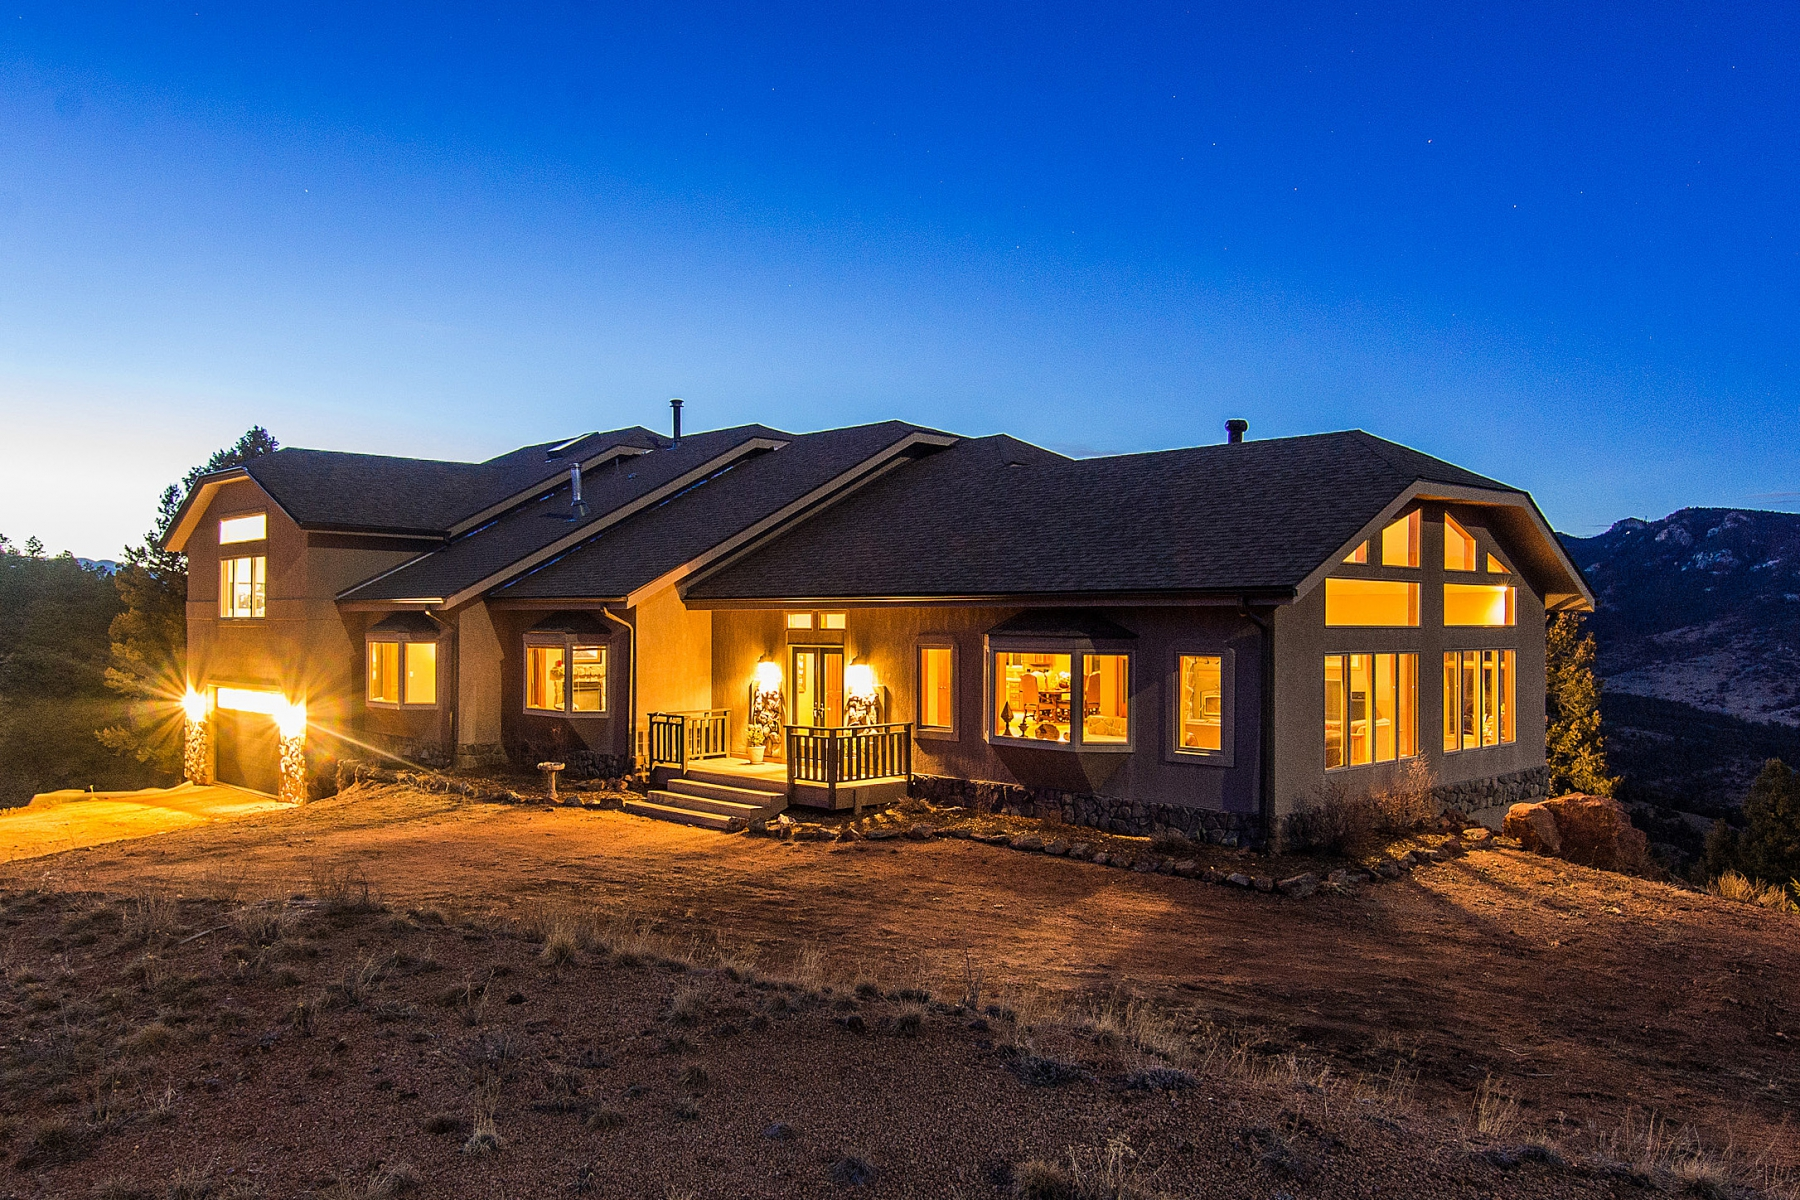 Single Family Home for Sale at Top of the World Views 15854 Cathedral Trail Conifer, Colorado 80433 United States